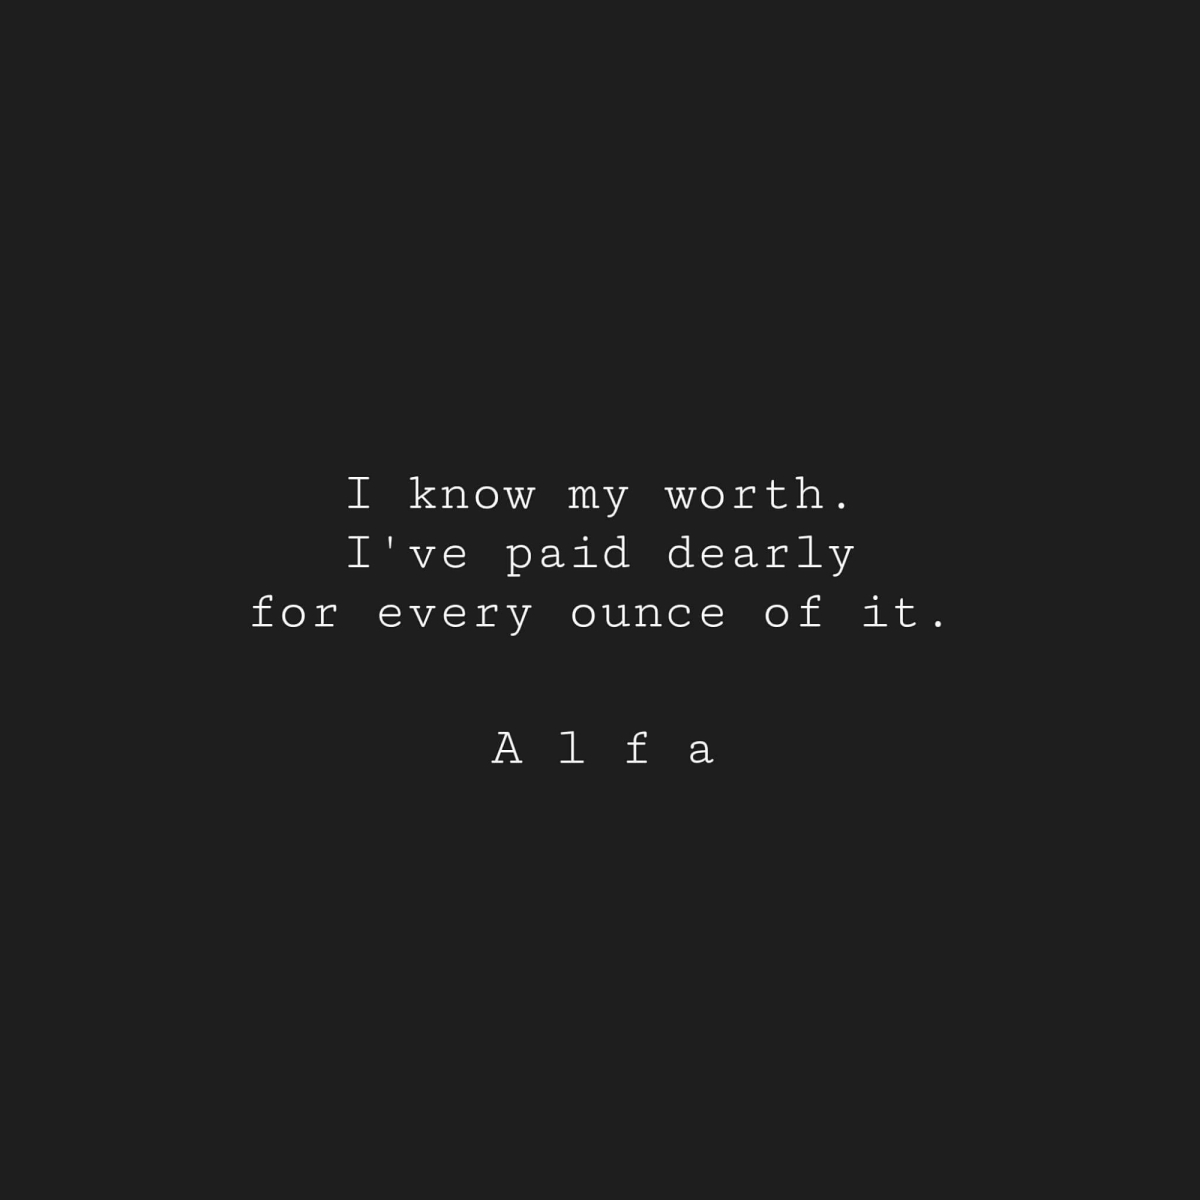 Self worth - Alfa